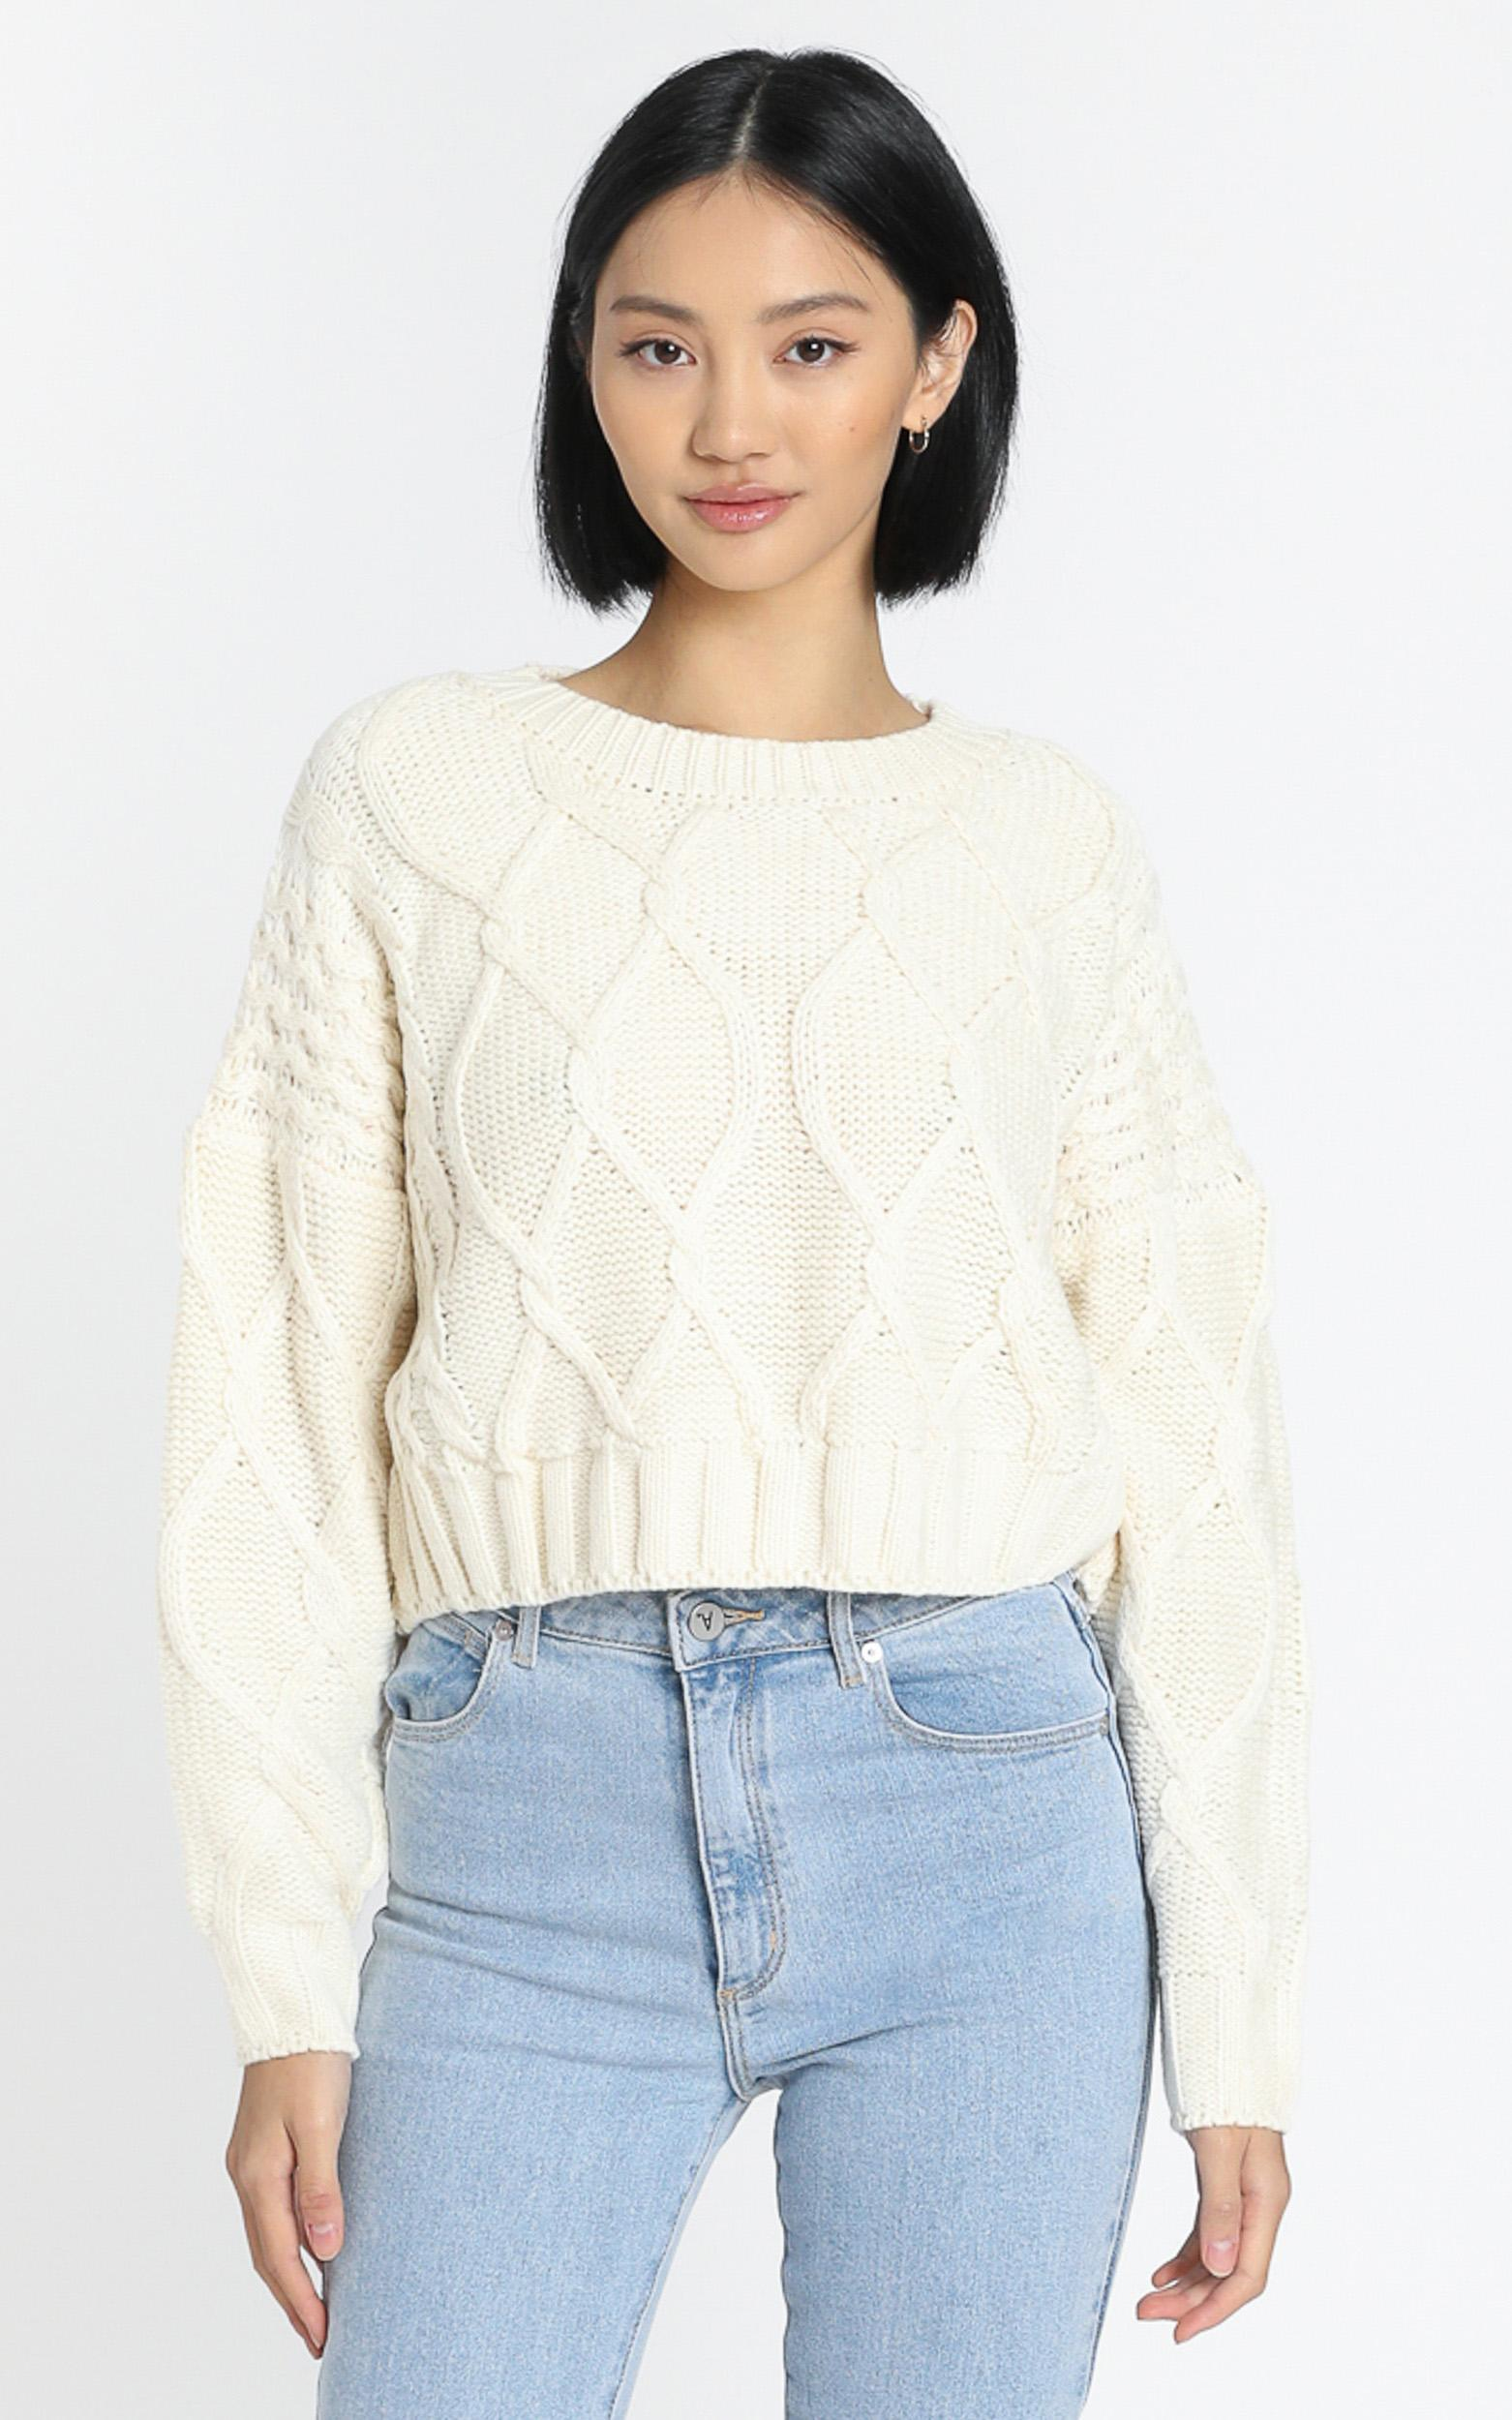 Chords of Glory Knit Jumper in cream - 20 (XXXXL), Cream, hi-res image number null